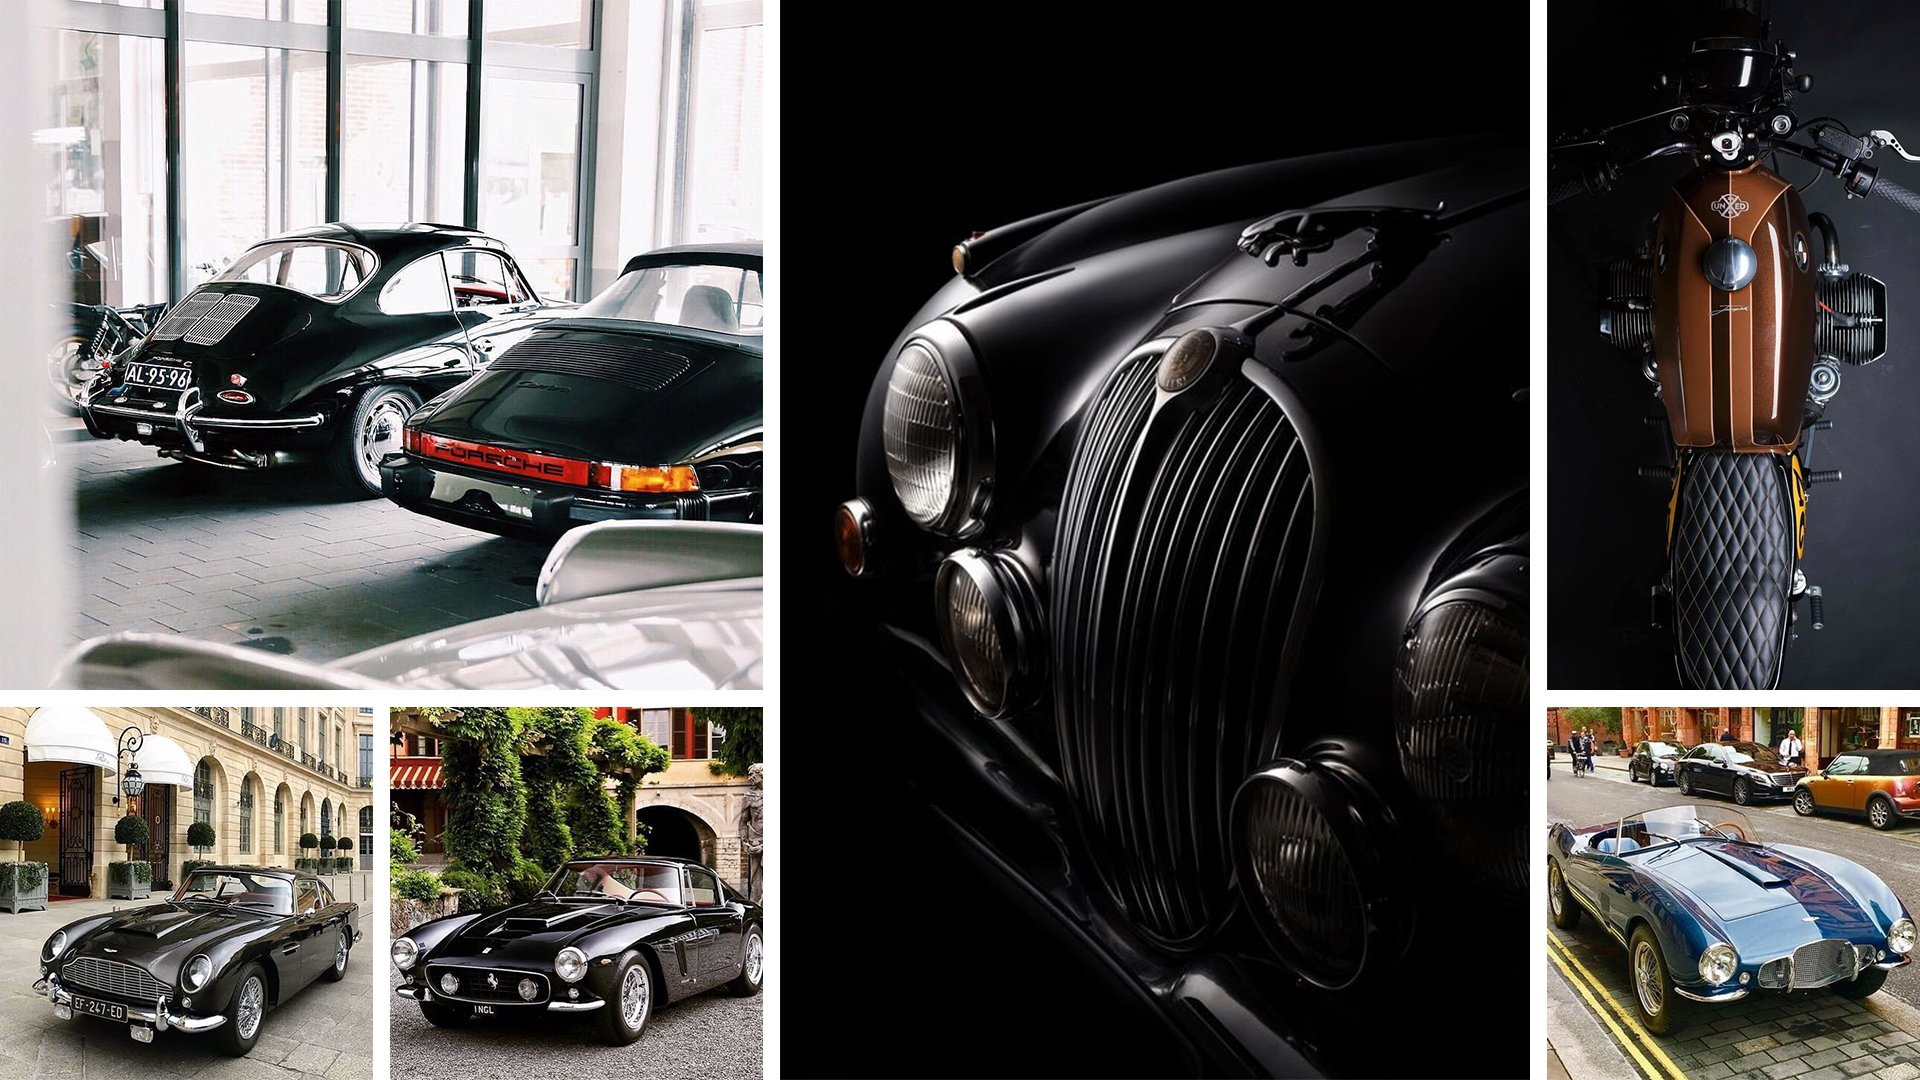 Vintage Cars Inspiration for Architectural Renderings